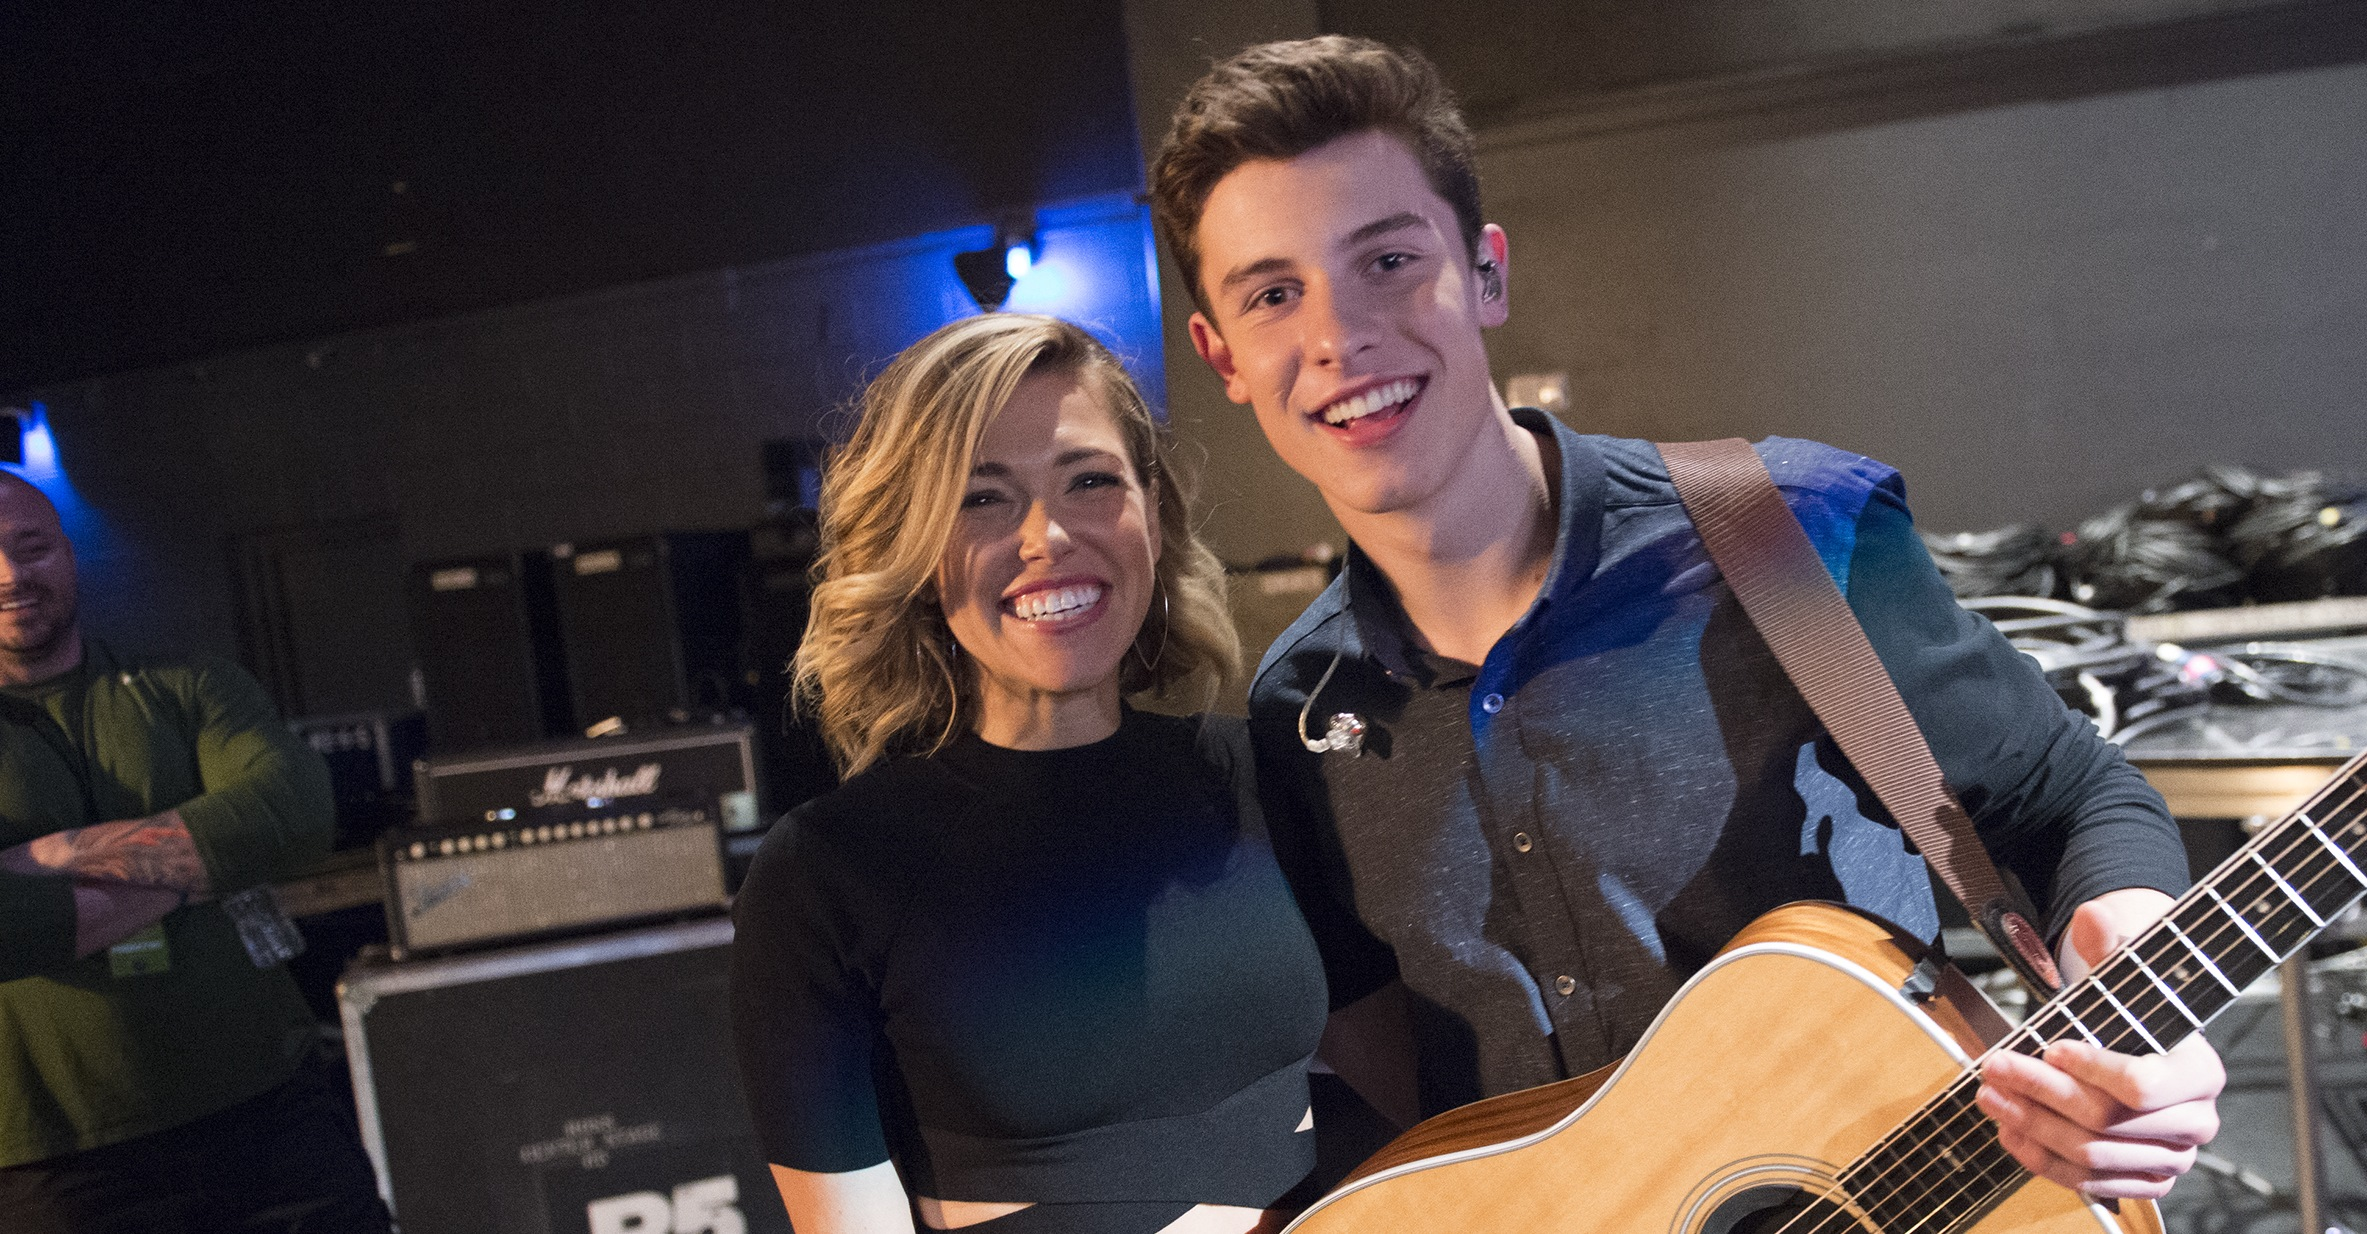 Backstage Look: Tori Kelly, Carly Rae Jepsen, Shawn Mendes ...